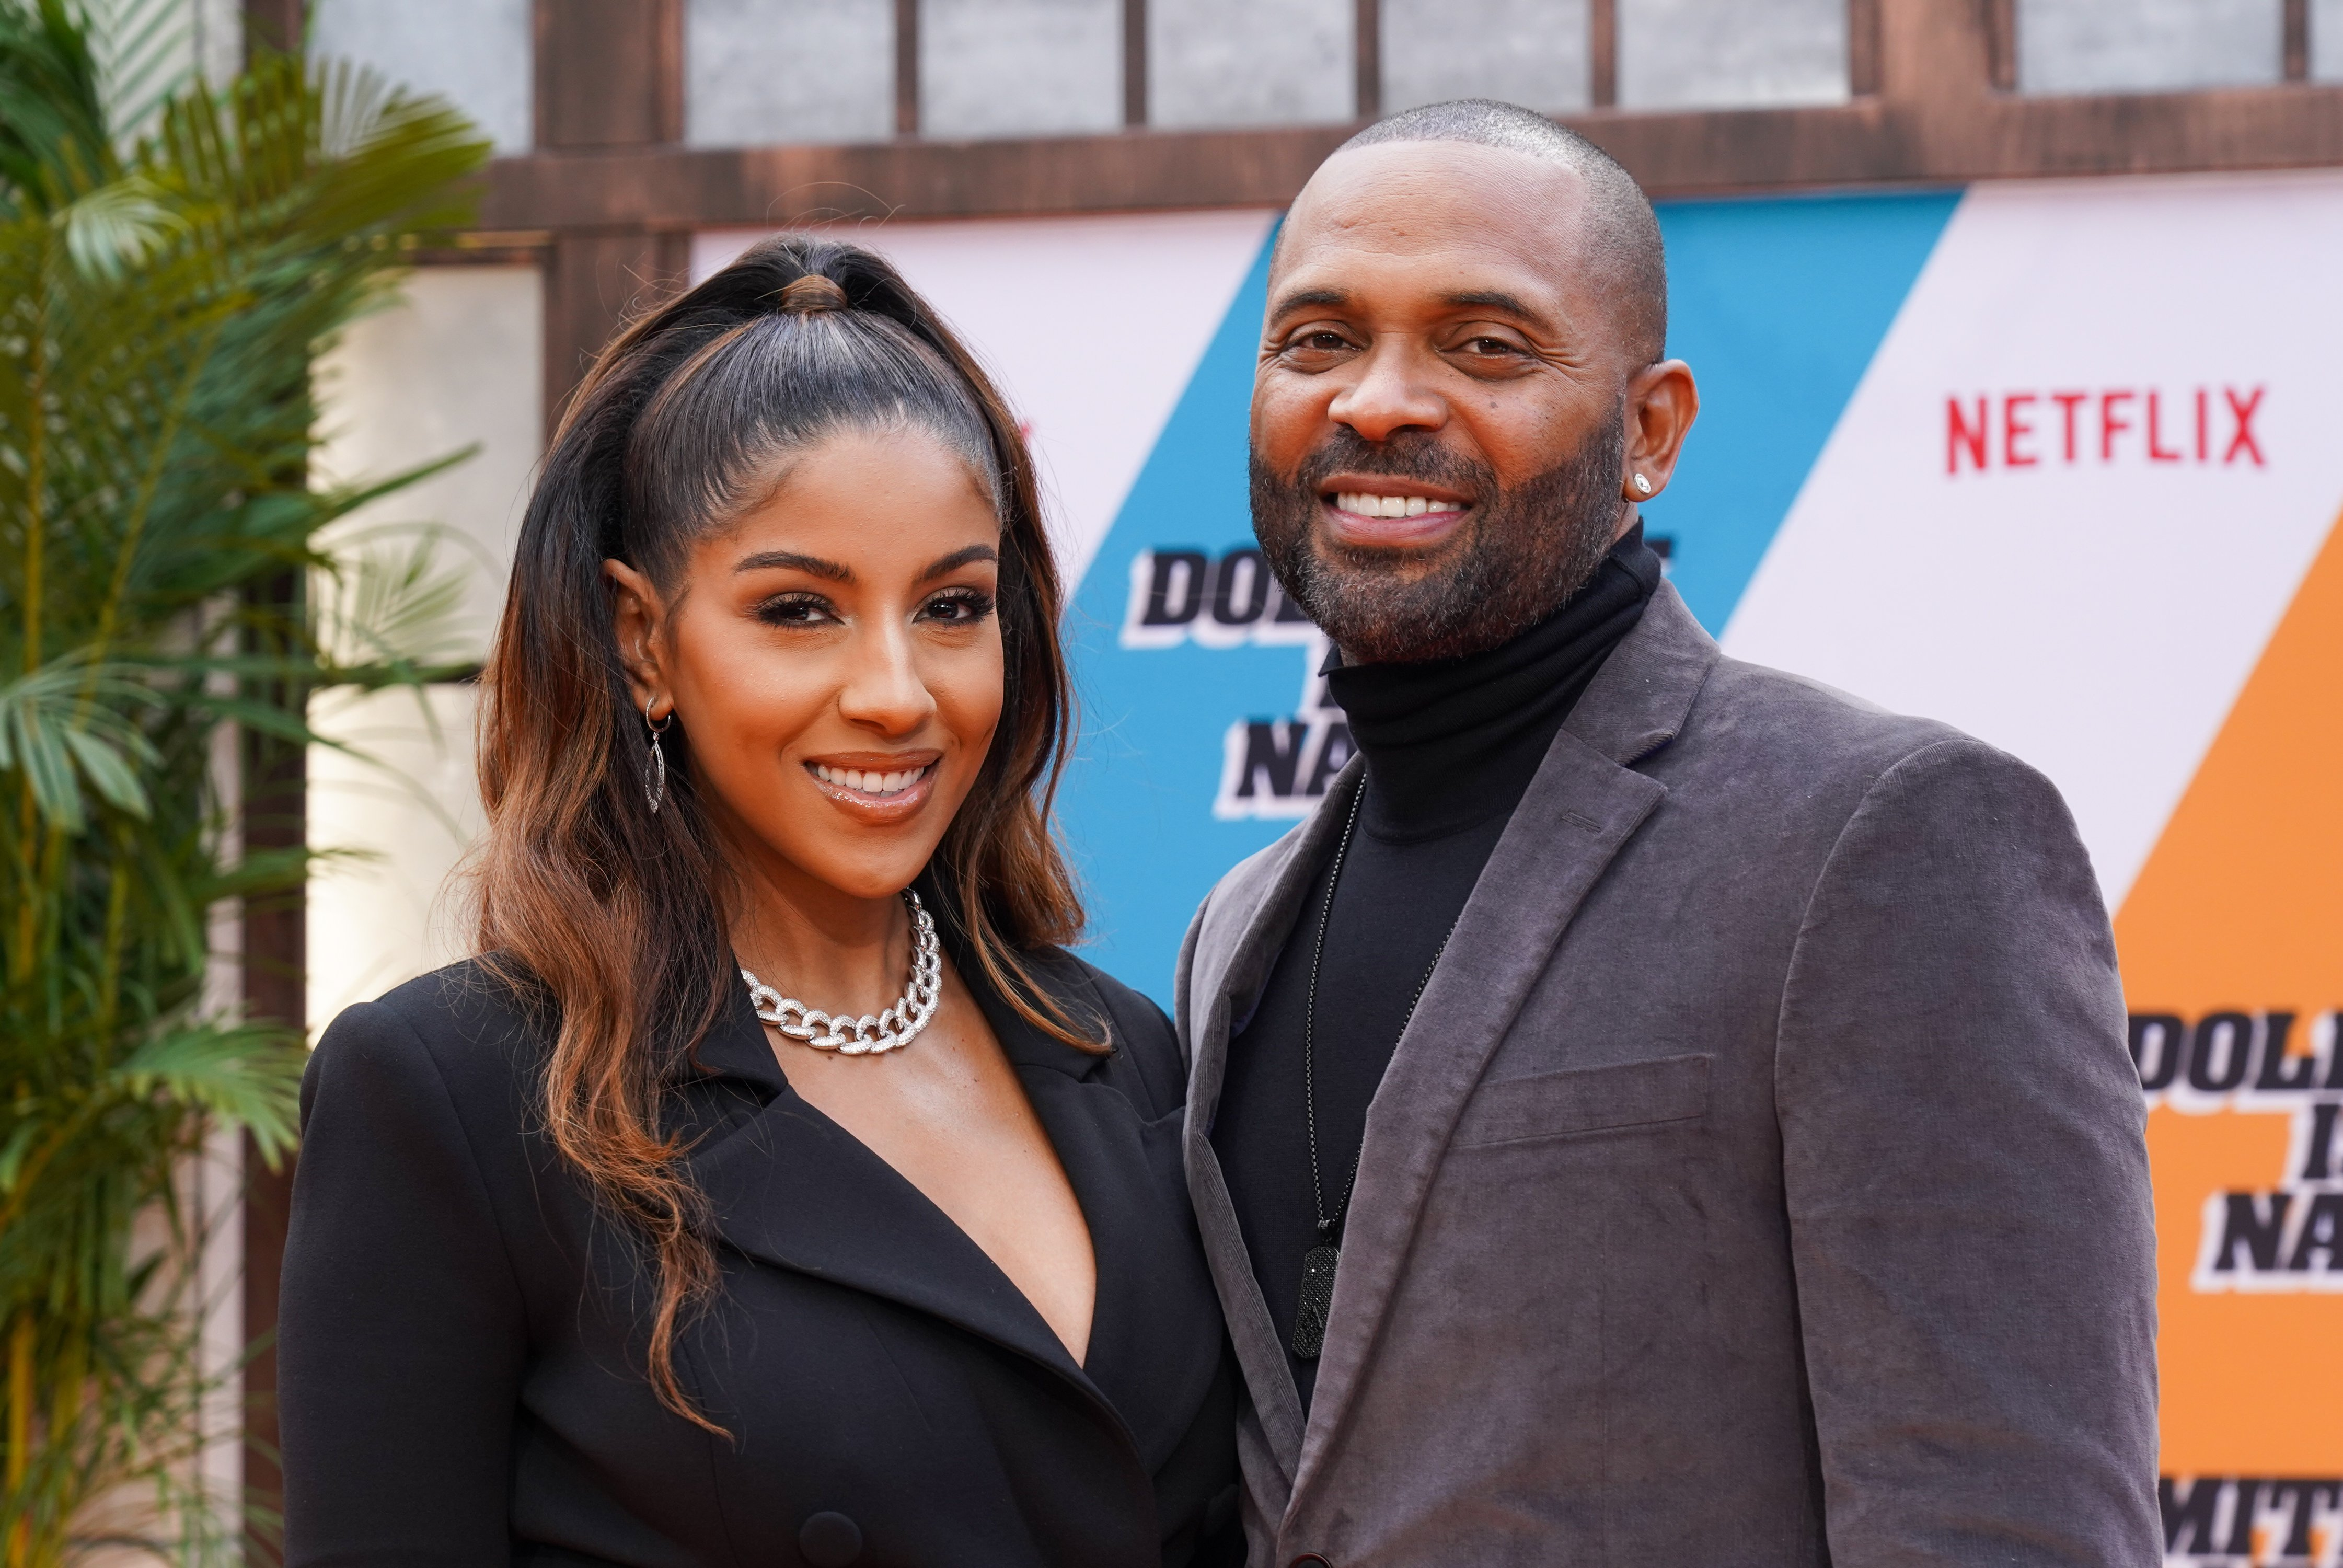 """Mike Epps and Kyra Robinson at Netflix's """"Dolemite Is My Name"""" LA Premiere at Regency Village Theatre on September 28, 2019 in Westwood, California. 